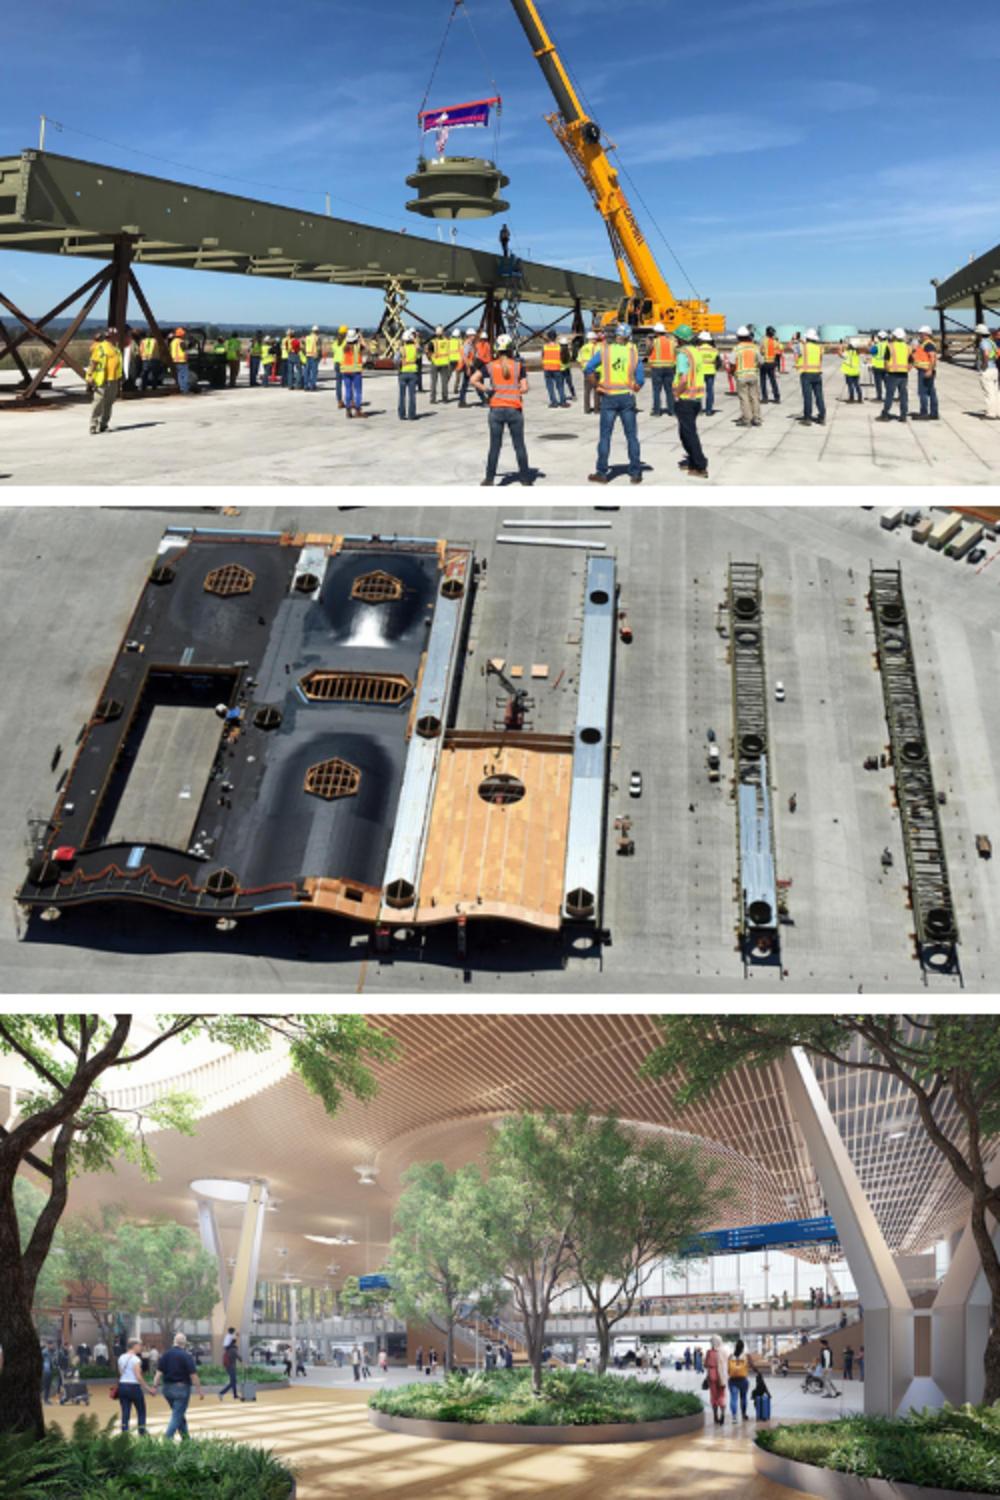 Top image: A crane lifting a steel piece with an american flag on to a giant steel beam. Middle: an aerial view of the new roof being constructed. Bottom: A rendering of the future interior of the ticket lobby at PDX featuring the wooden roof.